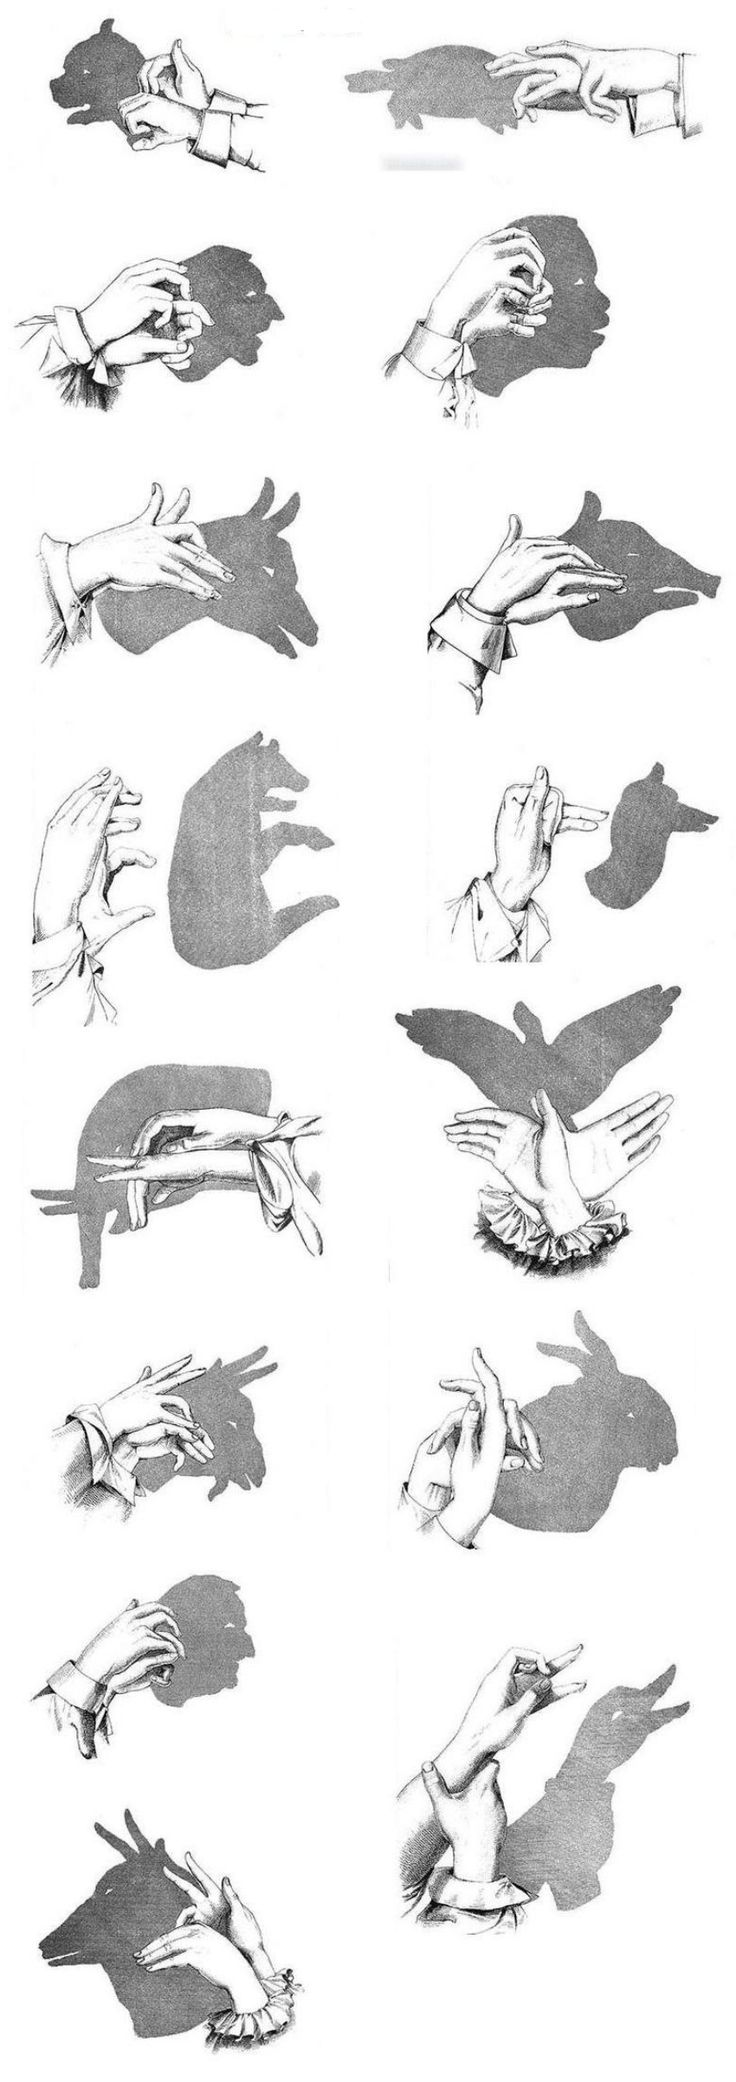 hand-shadow-puppets-3                                                                                                                                                                                 More